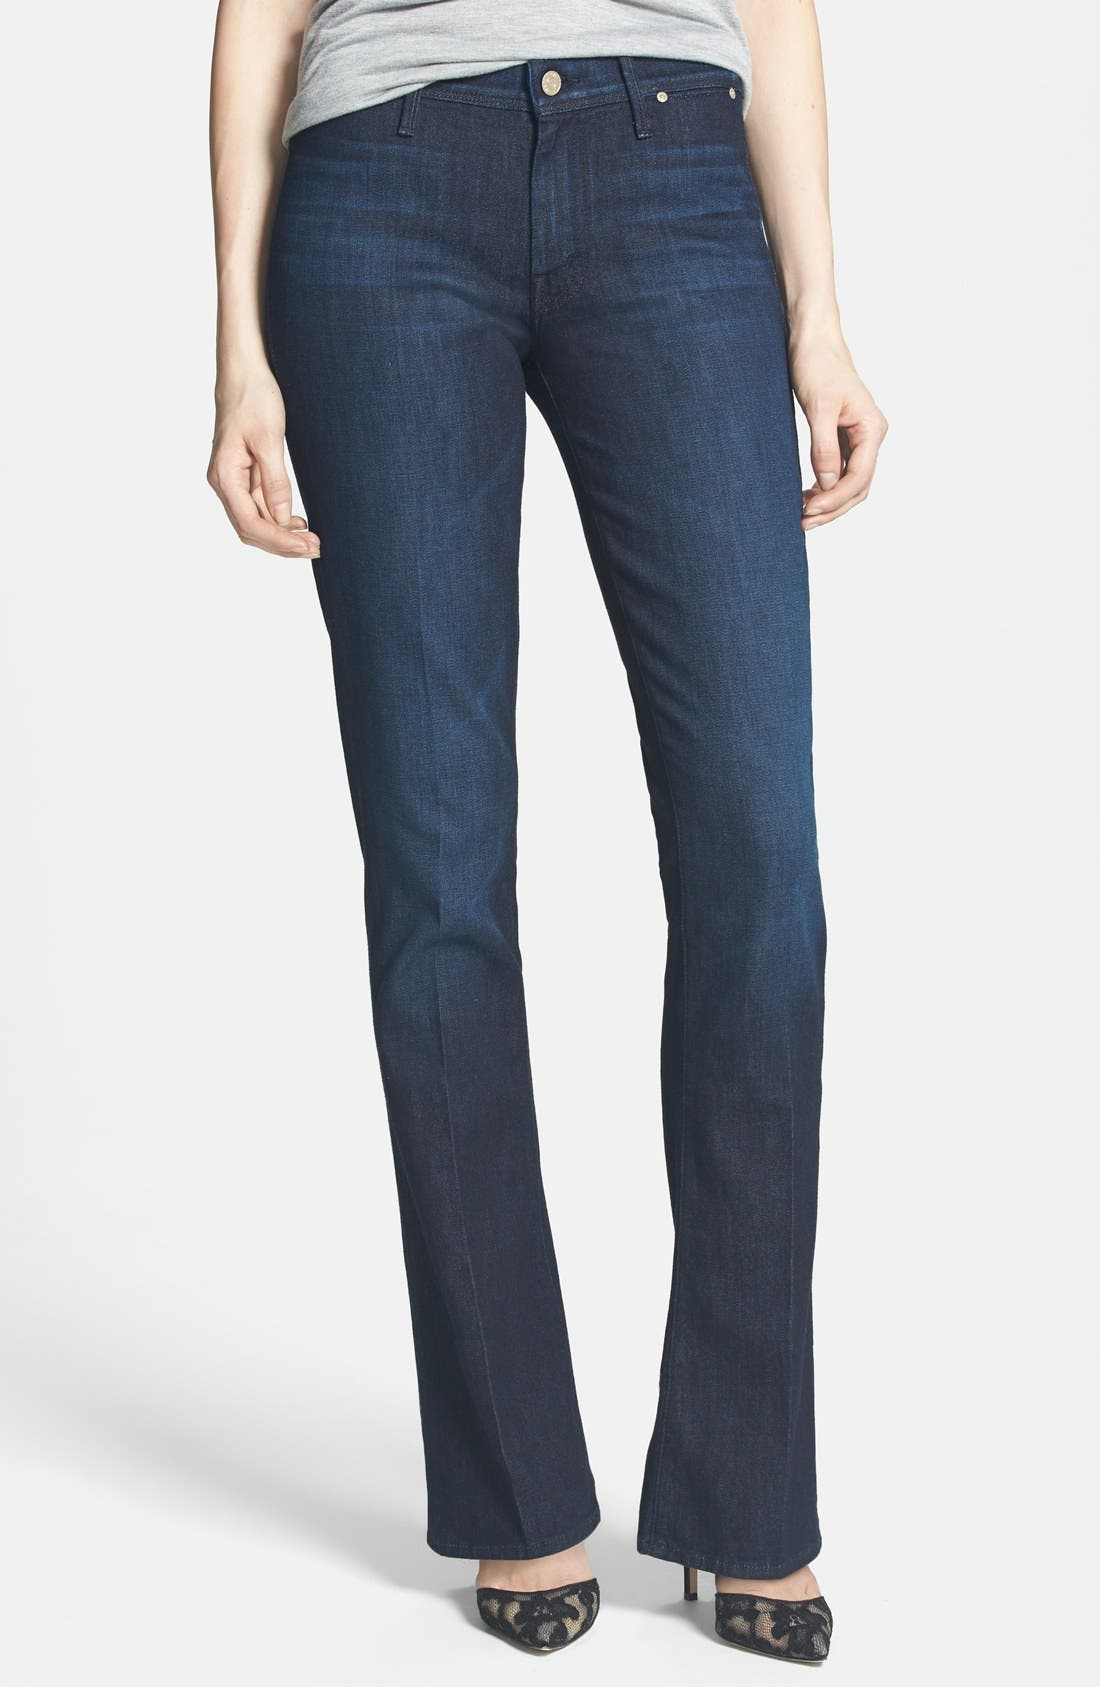 Alternate Image 1 Selected - MOTHER 'Daydreamer' Skinny Flare Leg Jeans (Night Moves)